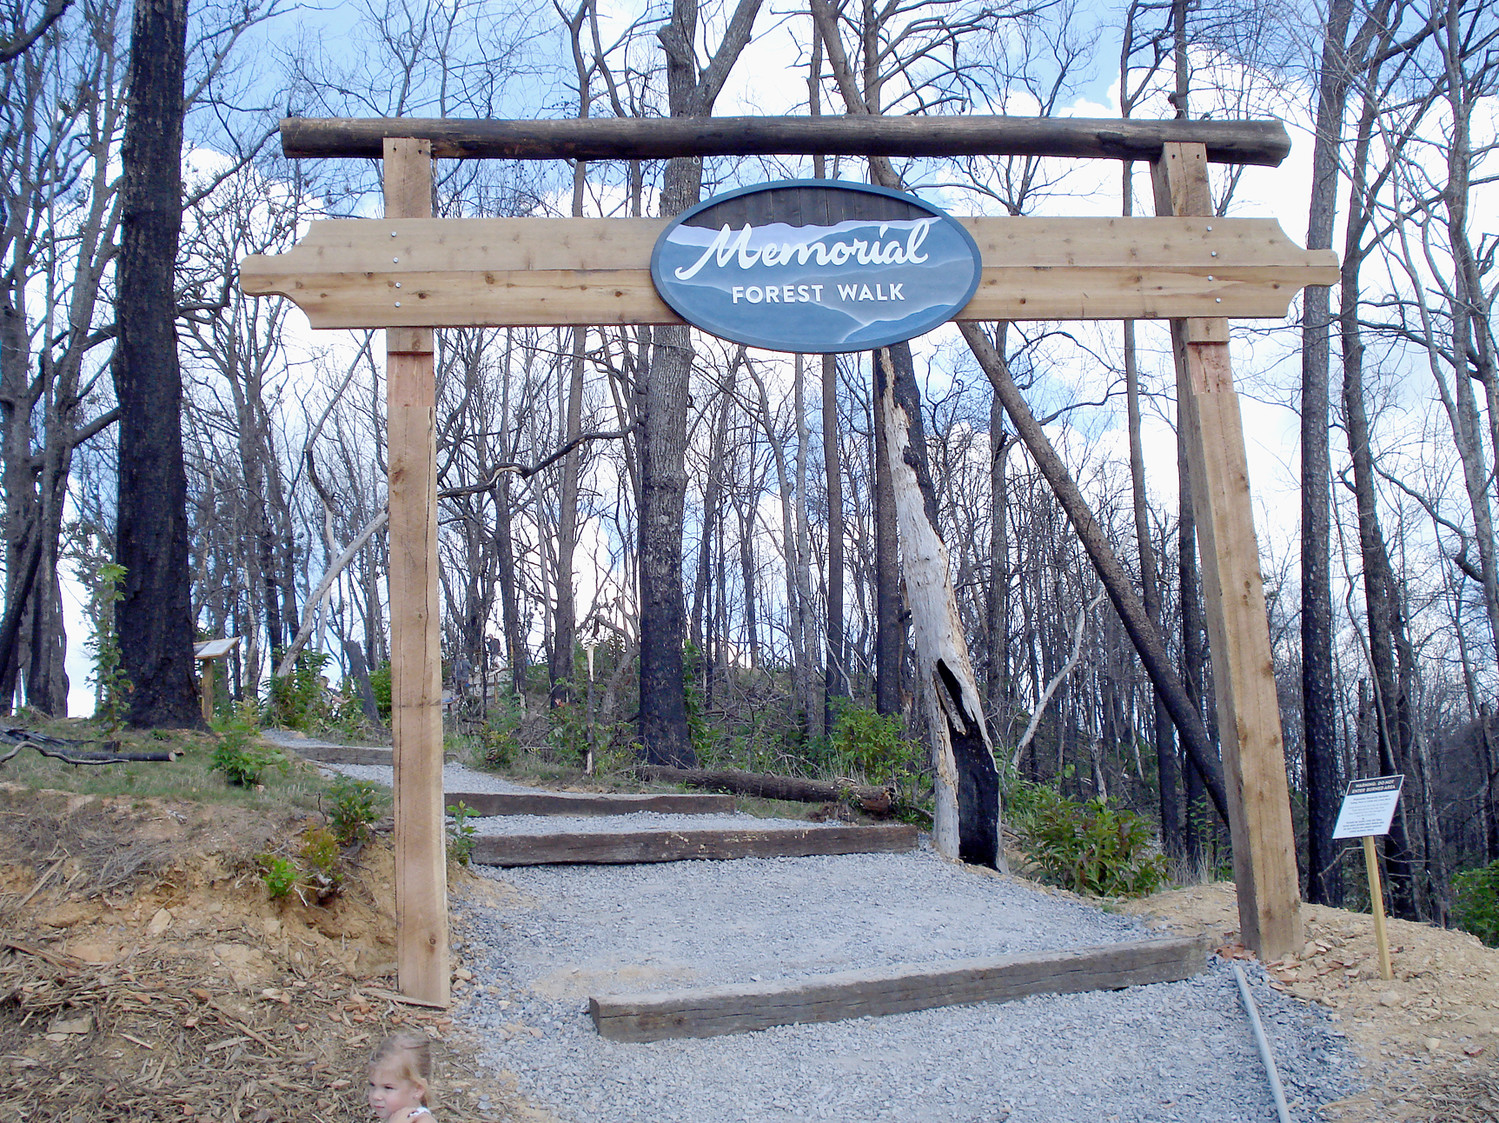 THE MEMORIAL FOREST WALK, located in the Firefly Village atop Anakeesta Mountain in Gatlinburg, opened Sept. 1. This view is the entrance to the short walkway that pays tribute to the victims, the heroes and the destroyed forests of the wildfires of November 2016.